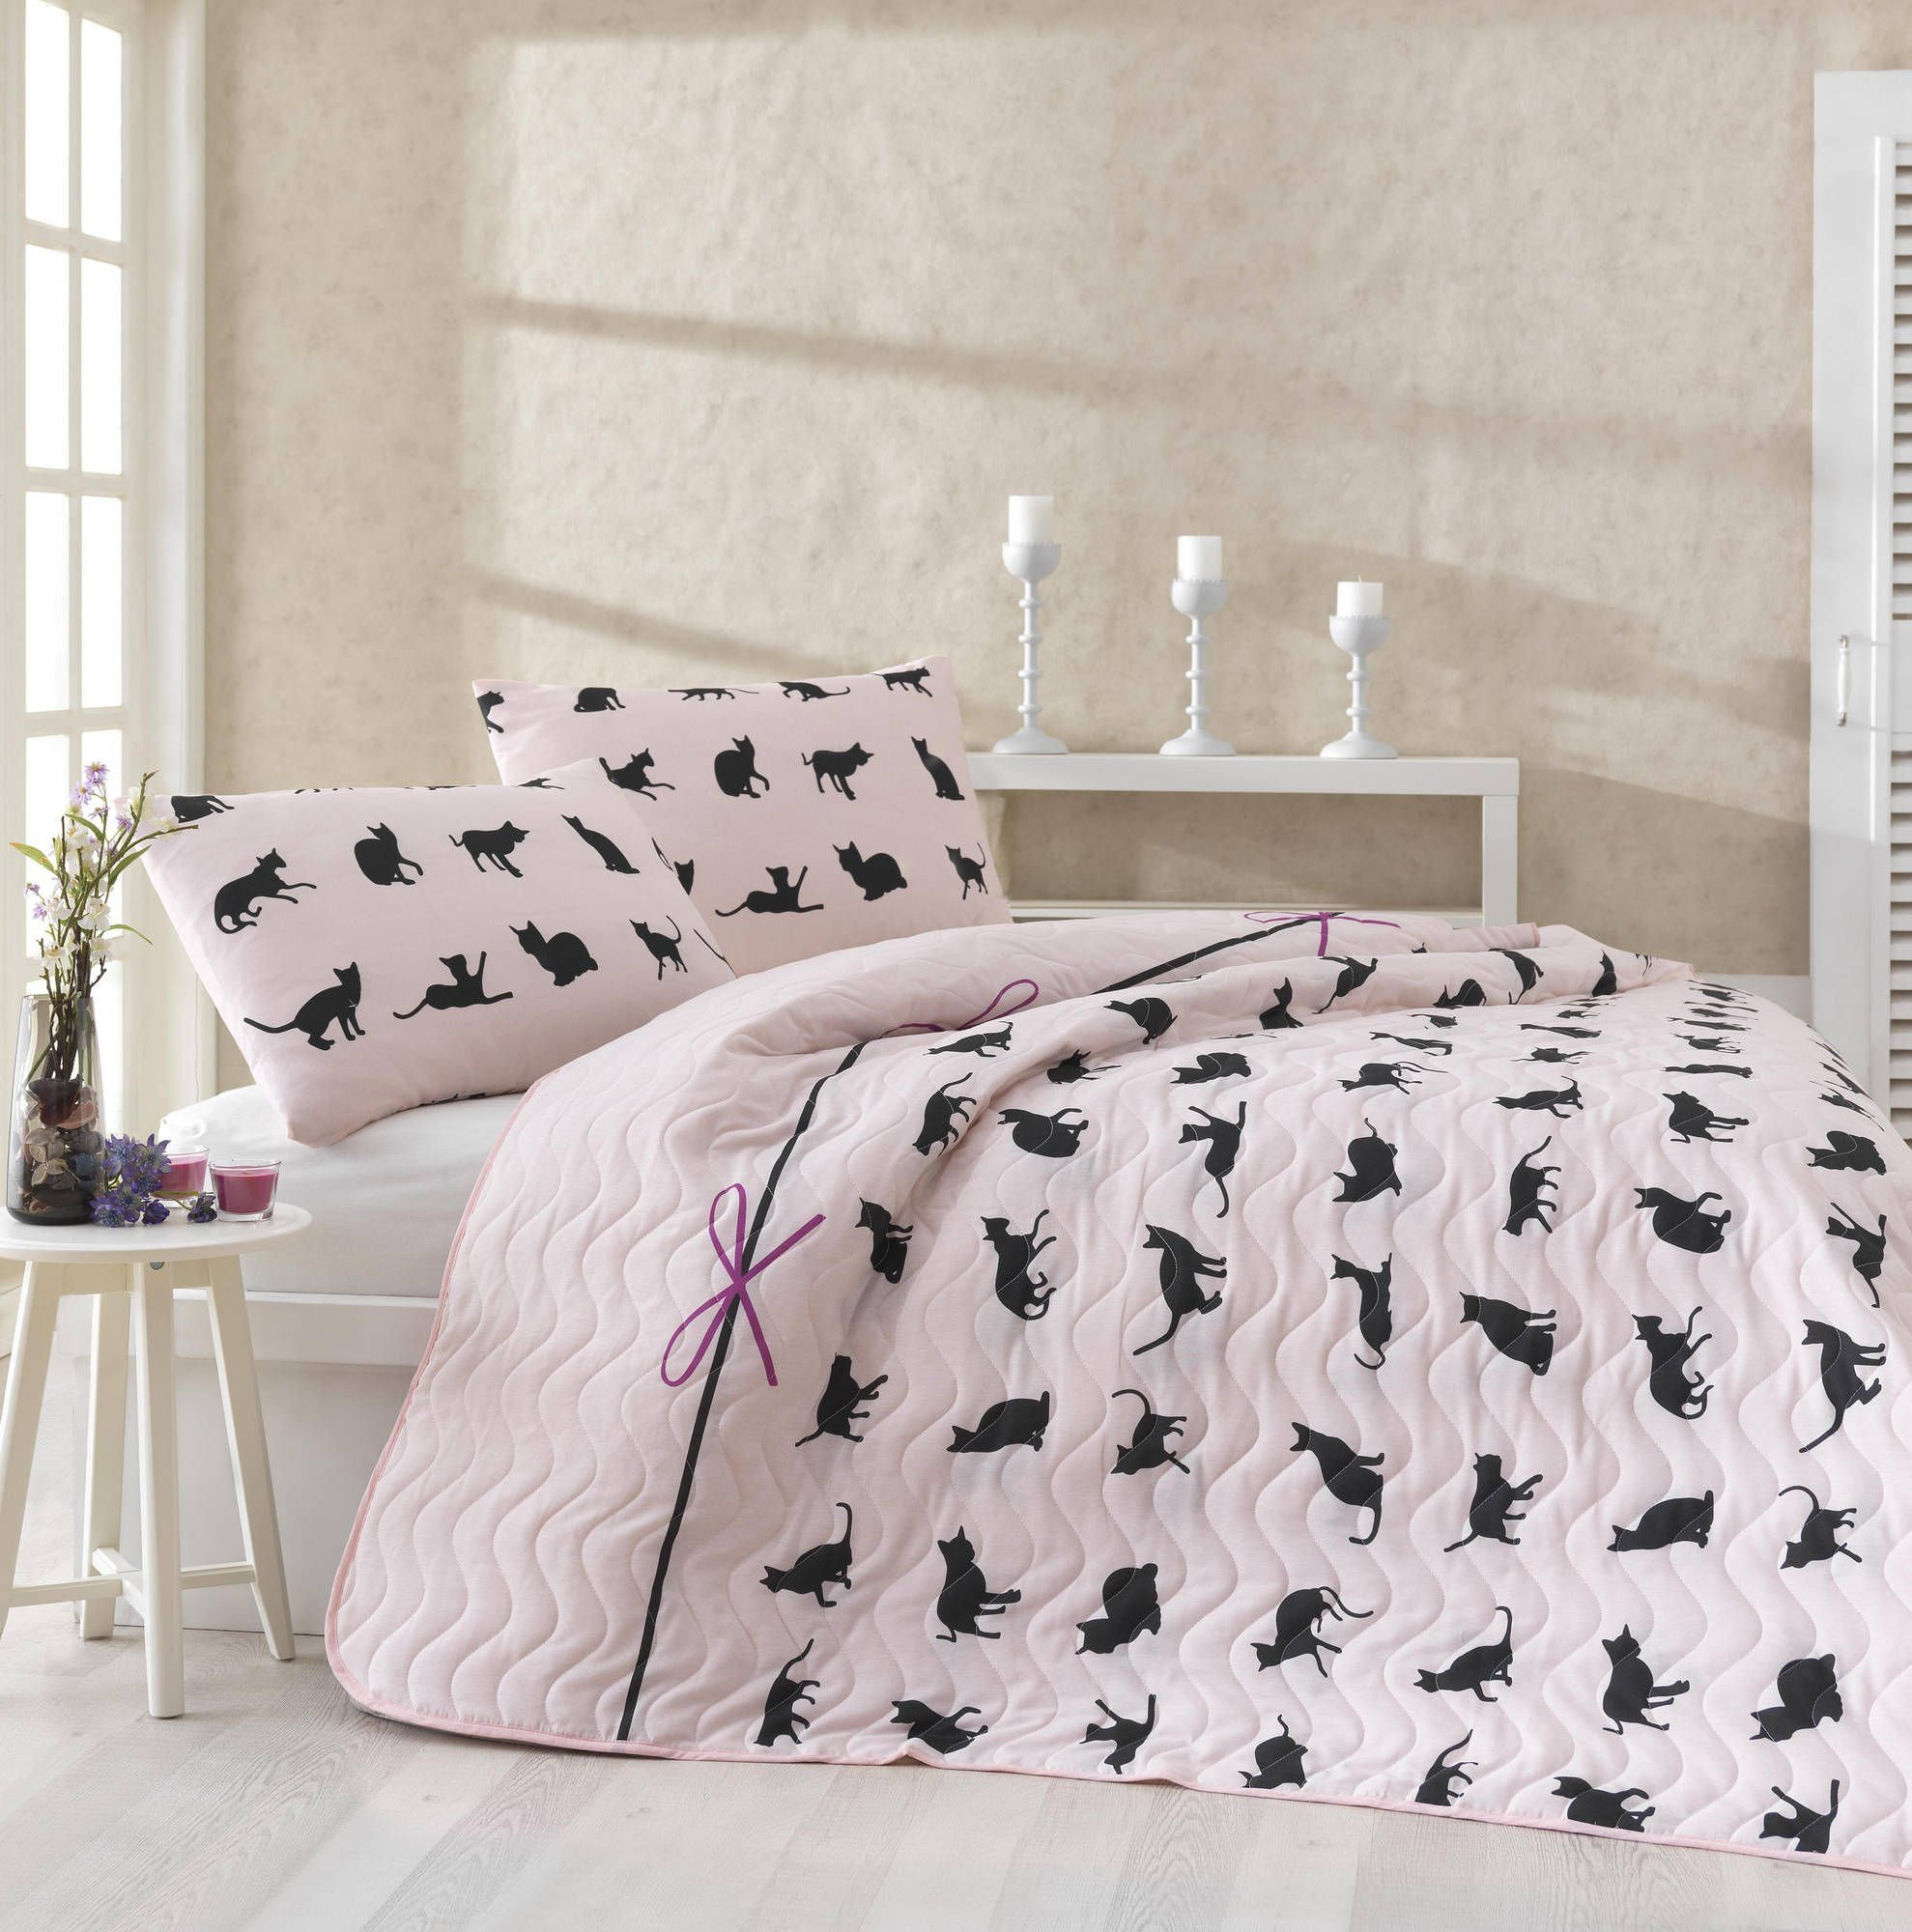 3 Pcs Soft Colored Full and Double Bedroom Bedding 65% Cotton 35% Polyester Double Quilted Bedspread Set 100% Fiber Filling Padded / Cat Animal Line Ribbon Sweet Adorable Pink Background / Bedspread S